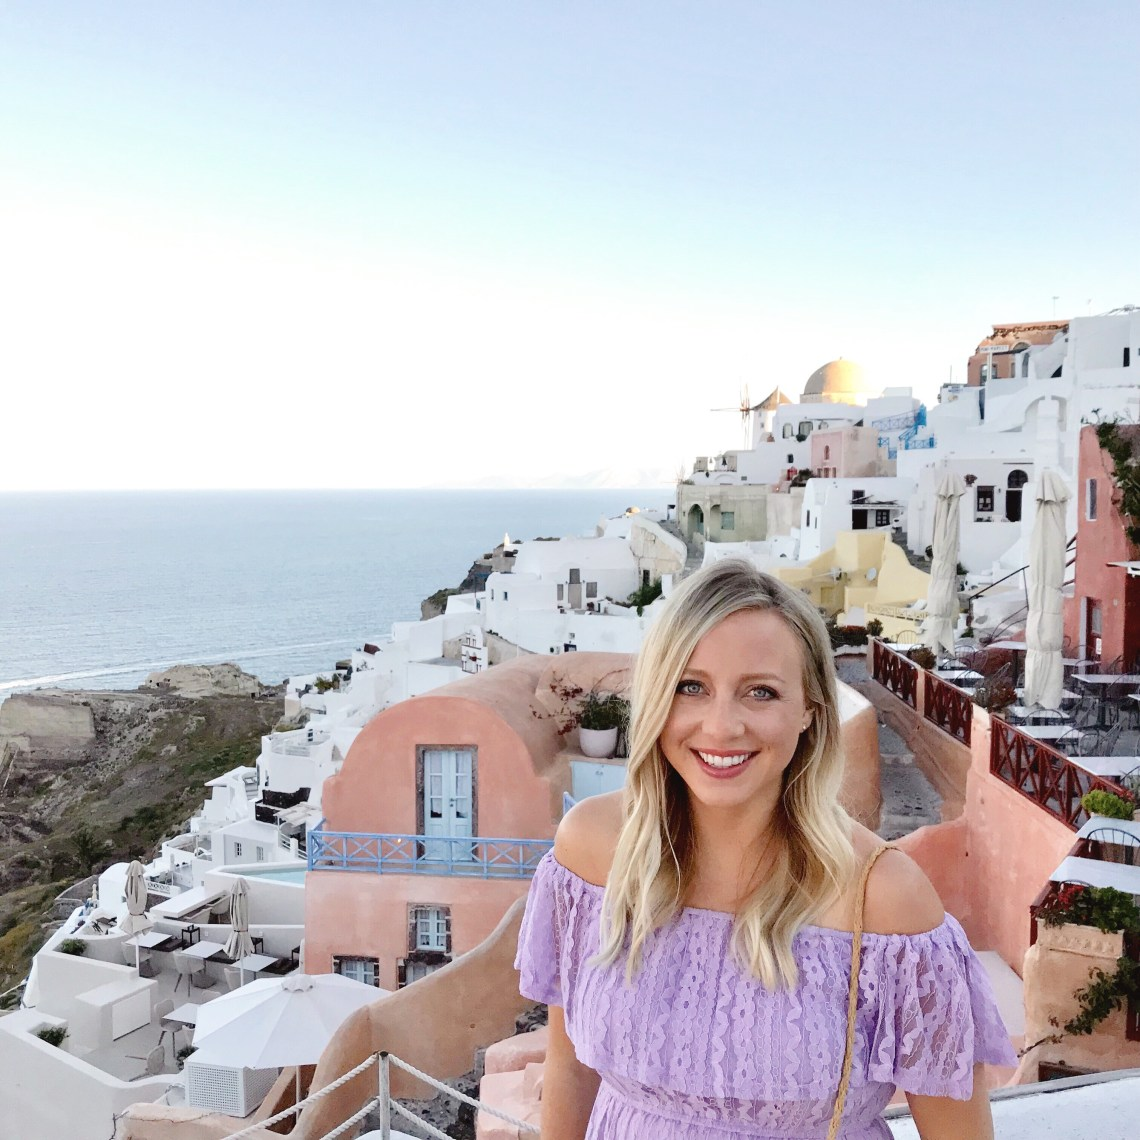 Complete Santorini travel guide.  Stunning scenery, relaxing atmosphere, and delicious seafood  - Santorini is a bucket list destination! Here's all of our favorite places to eat and things to do in Santorini, Greece.